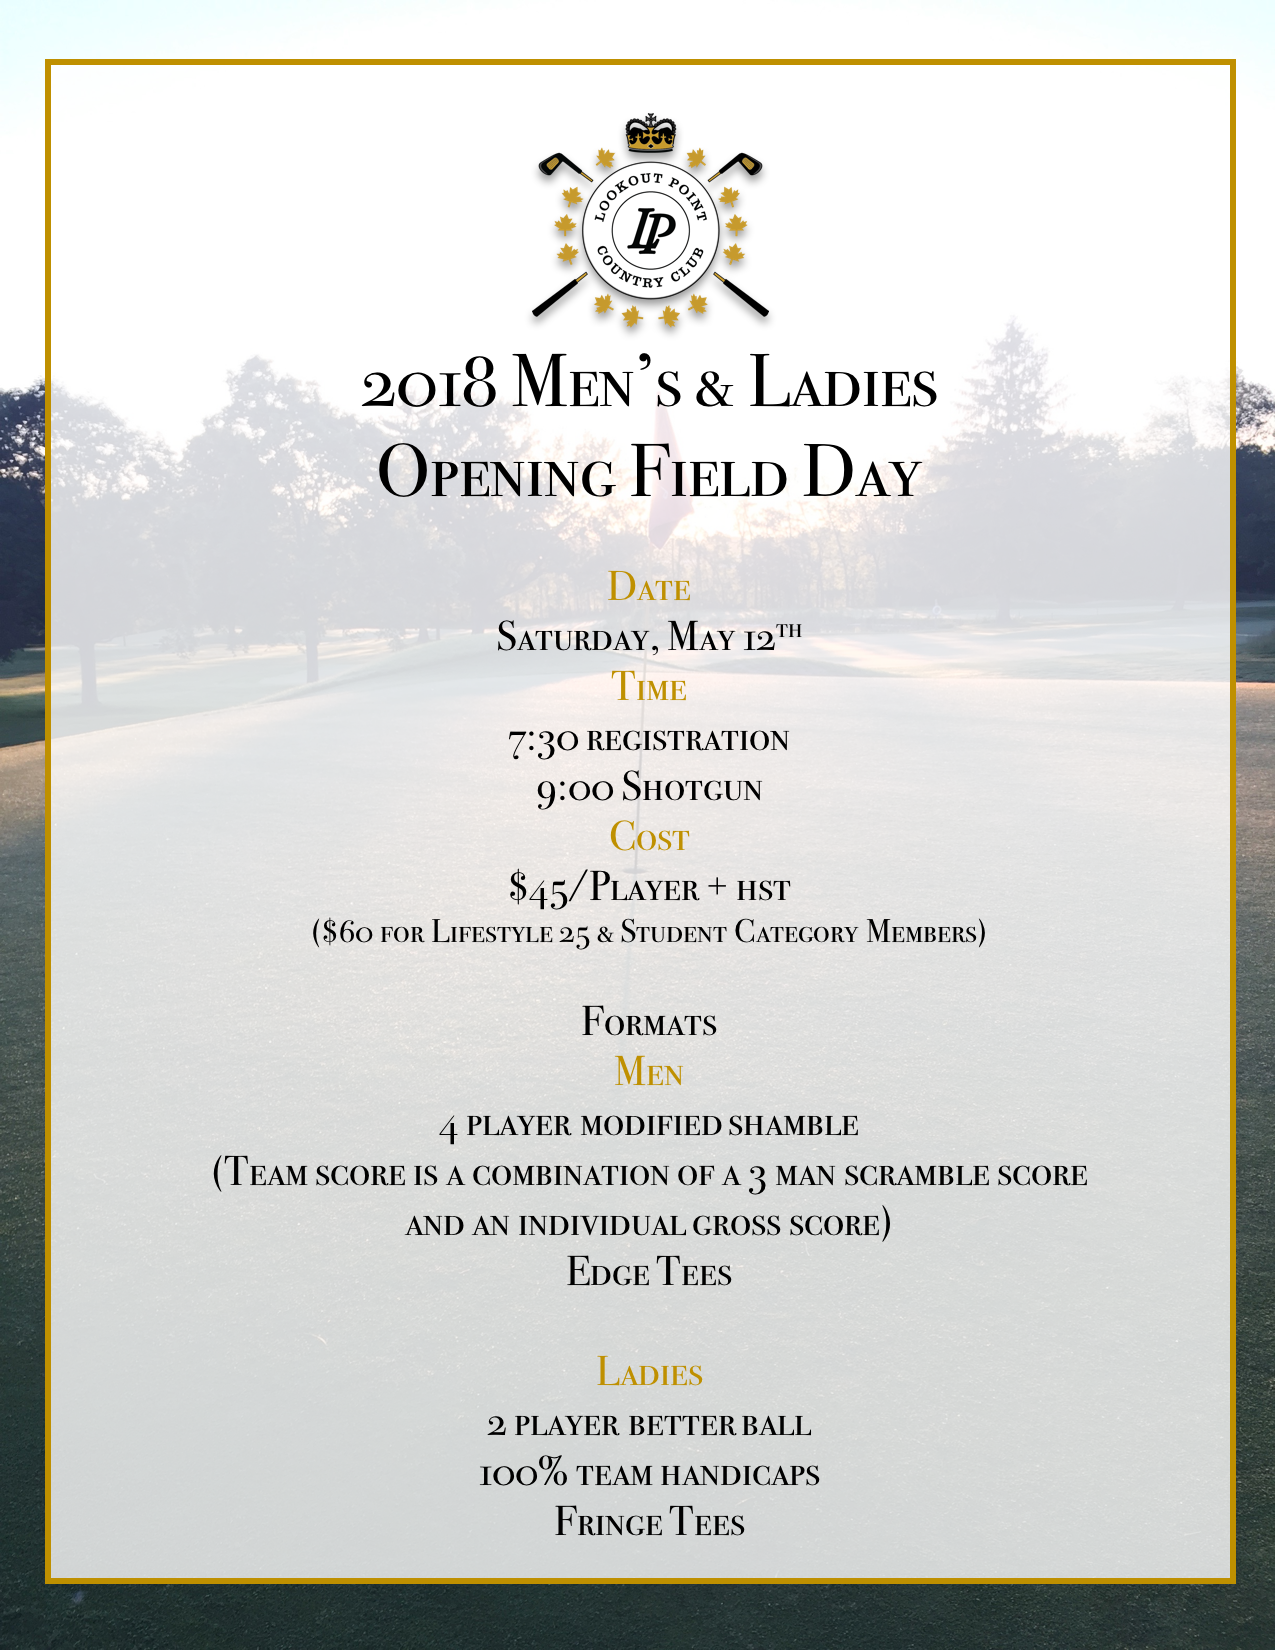 Register Now! - Come celebrate the start of the 2018 season. Click on the image and then sign into Member Central to register.